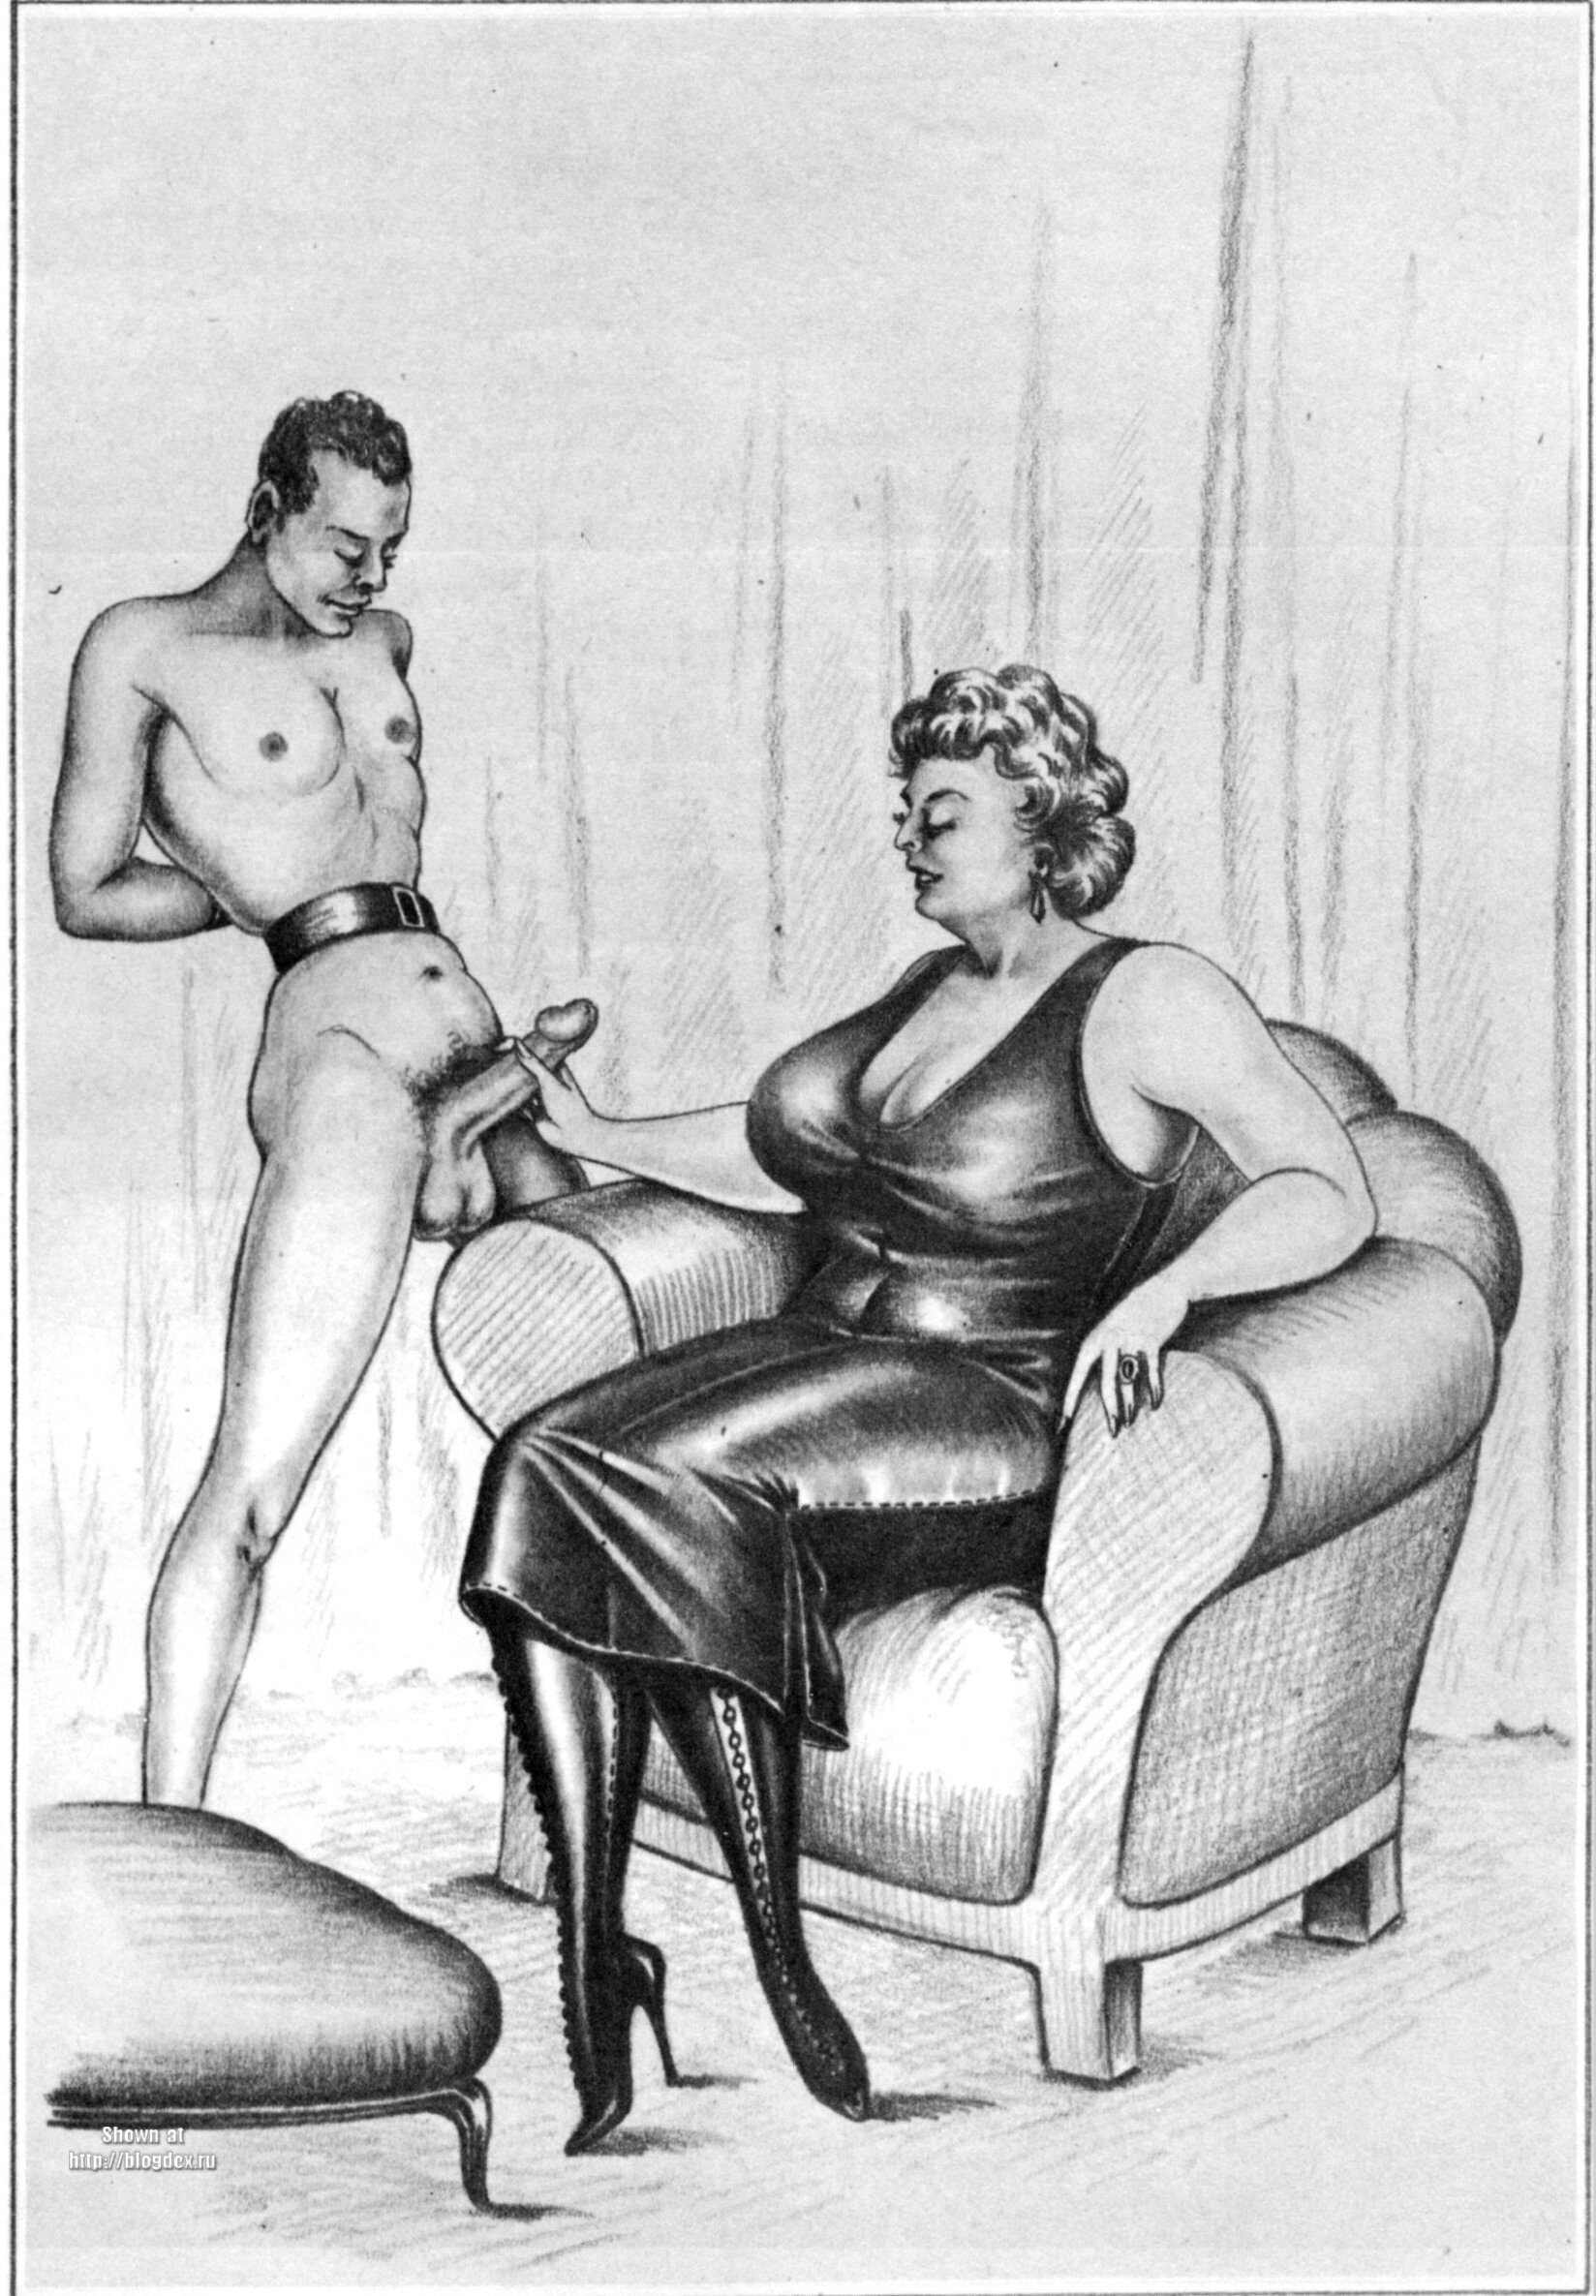 Nazi bdsm drawings vintage